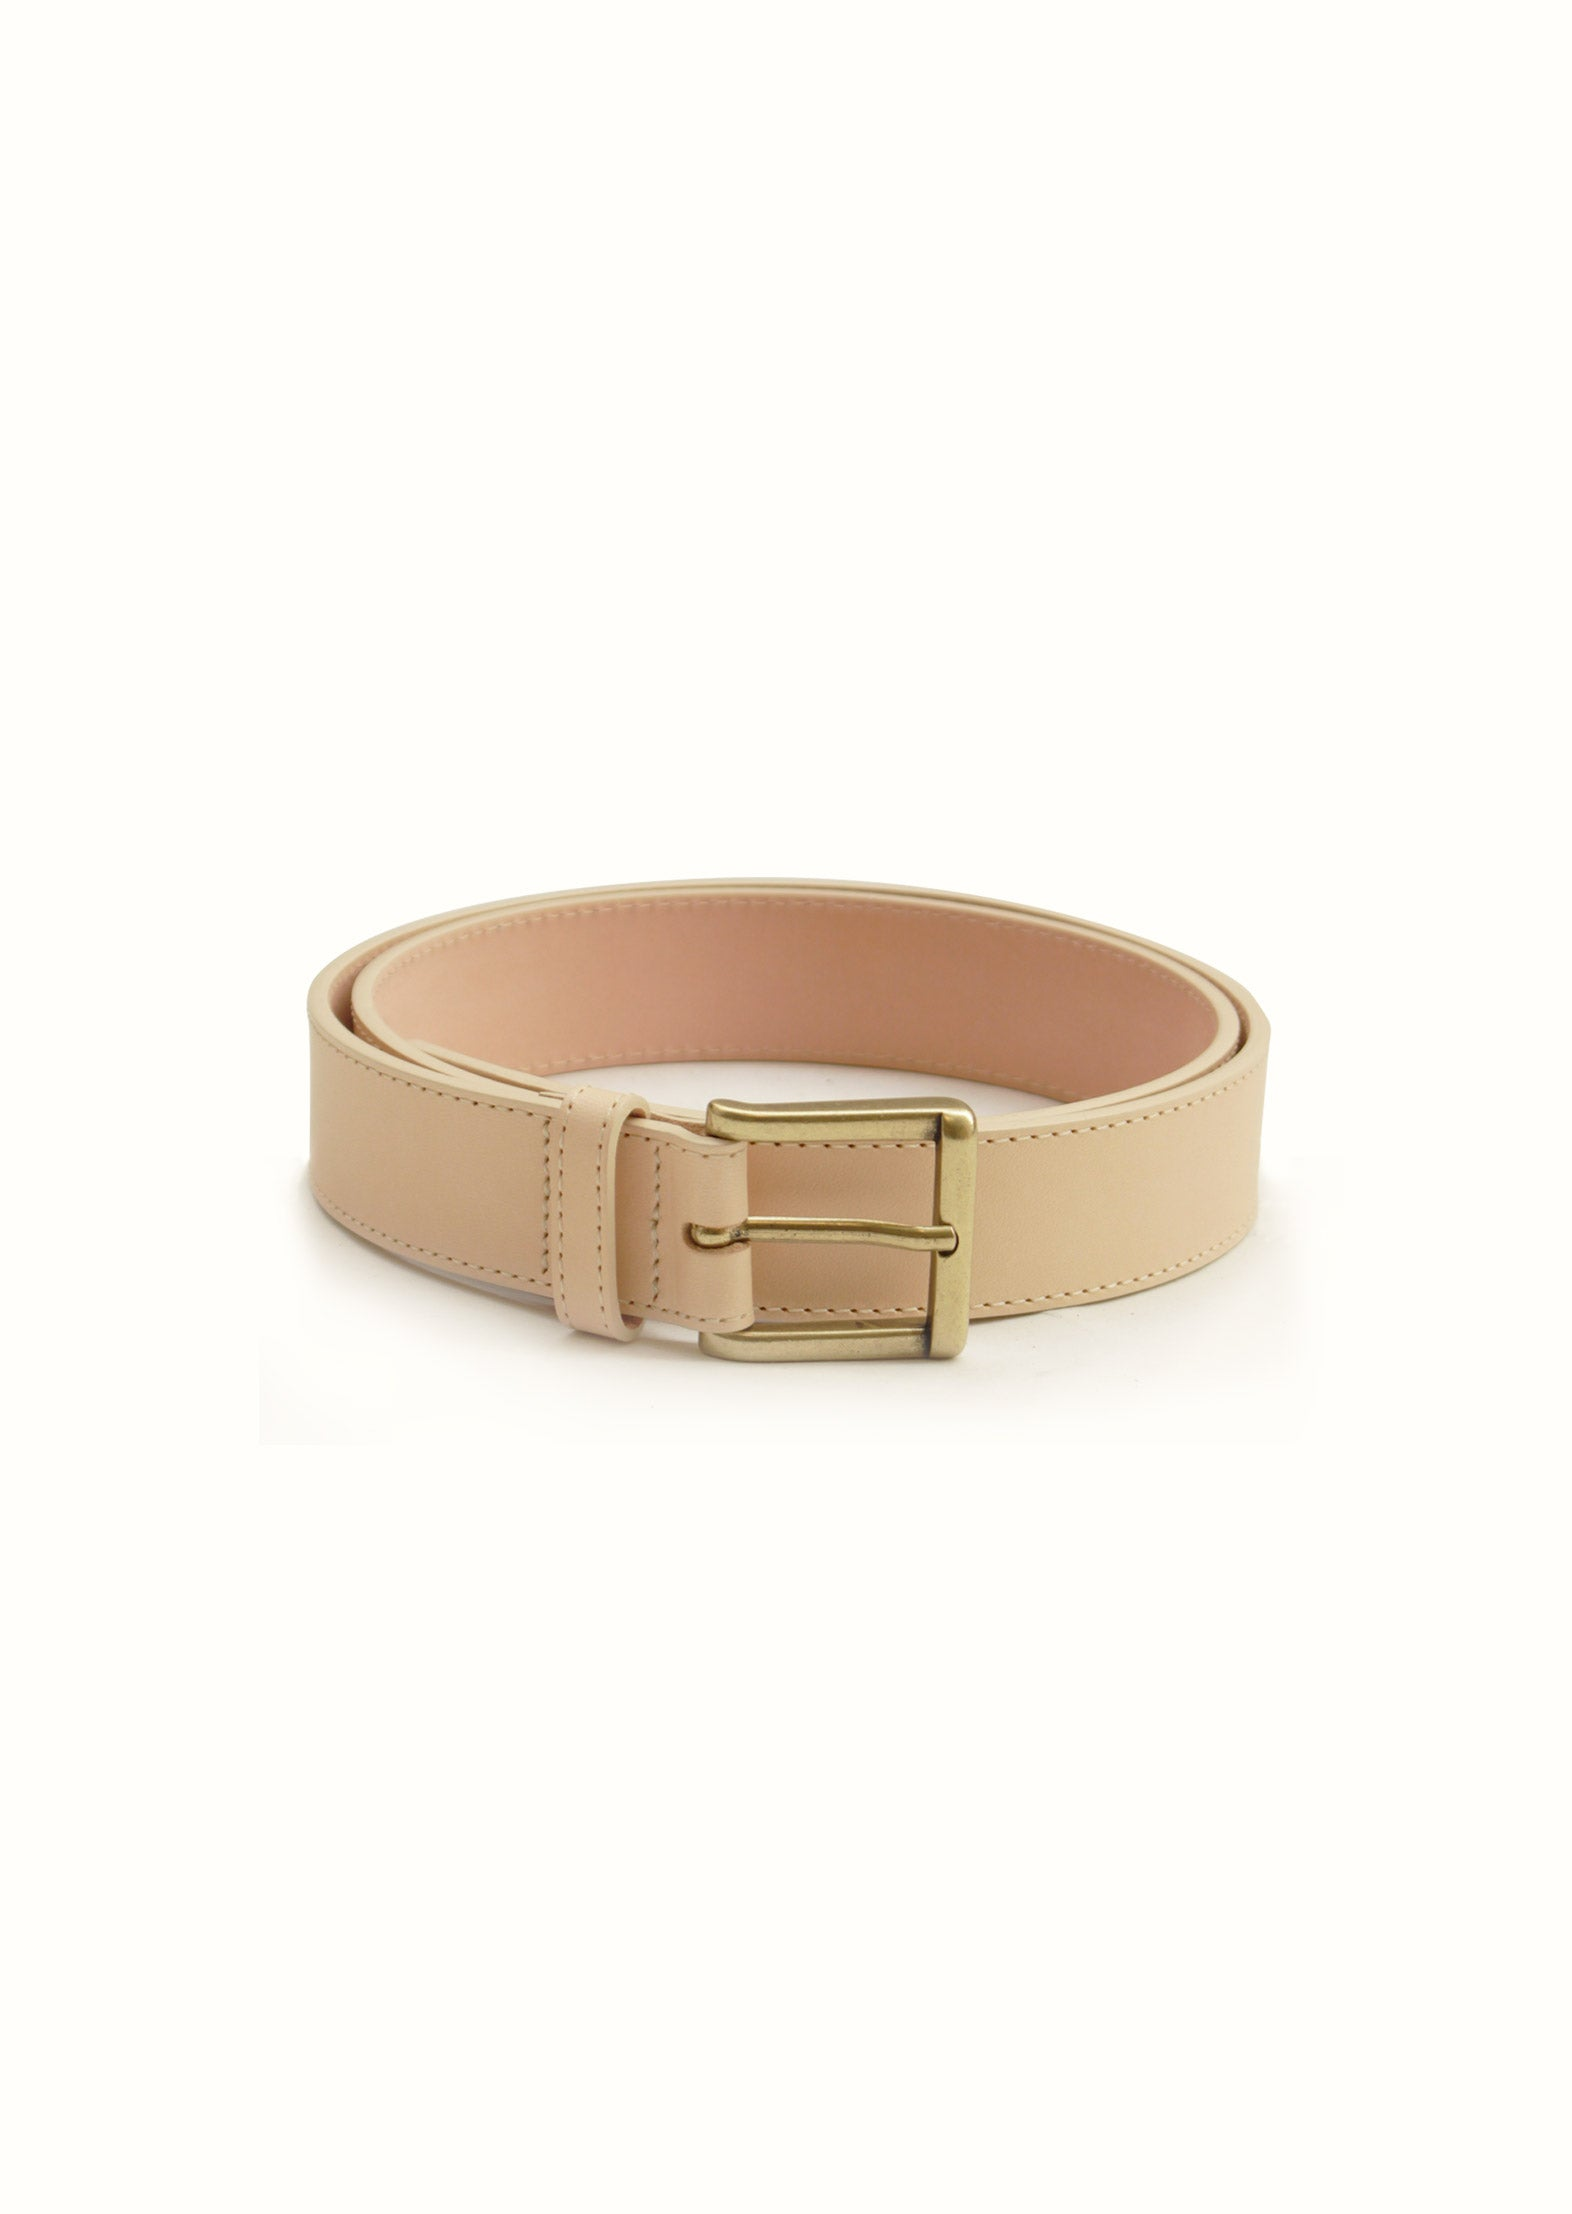 Essential belt - Vegetal tanned leather - Natural - De Bonne Facture